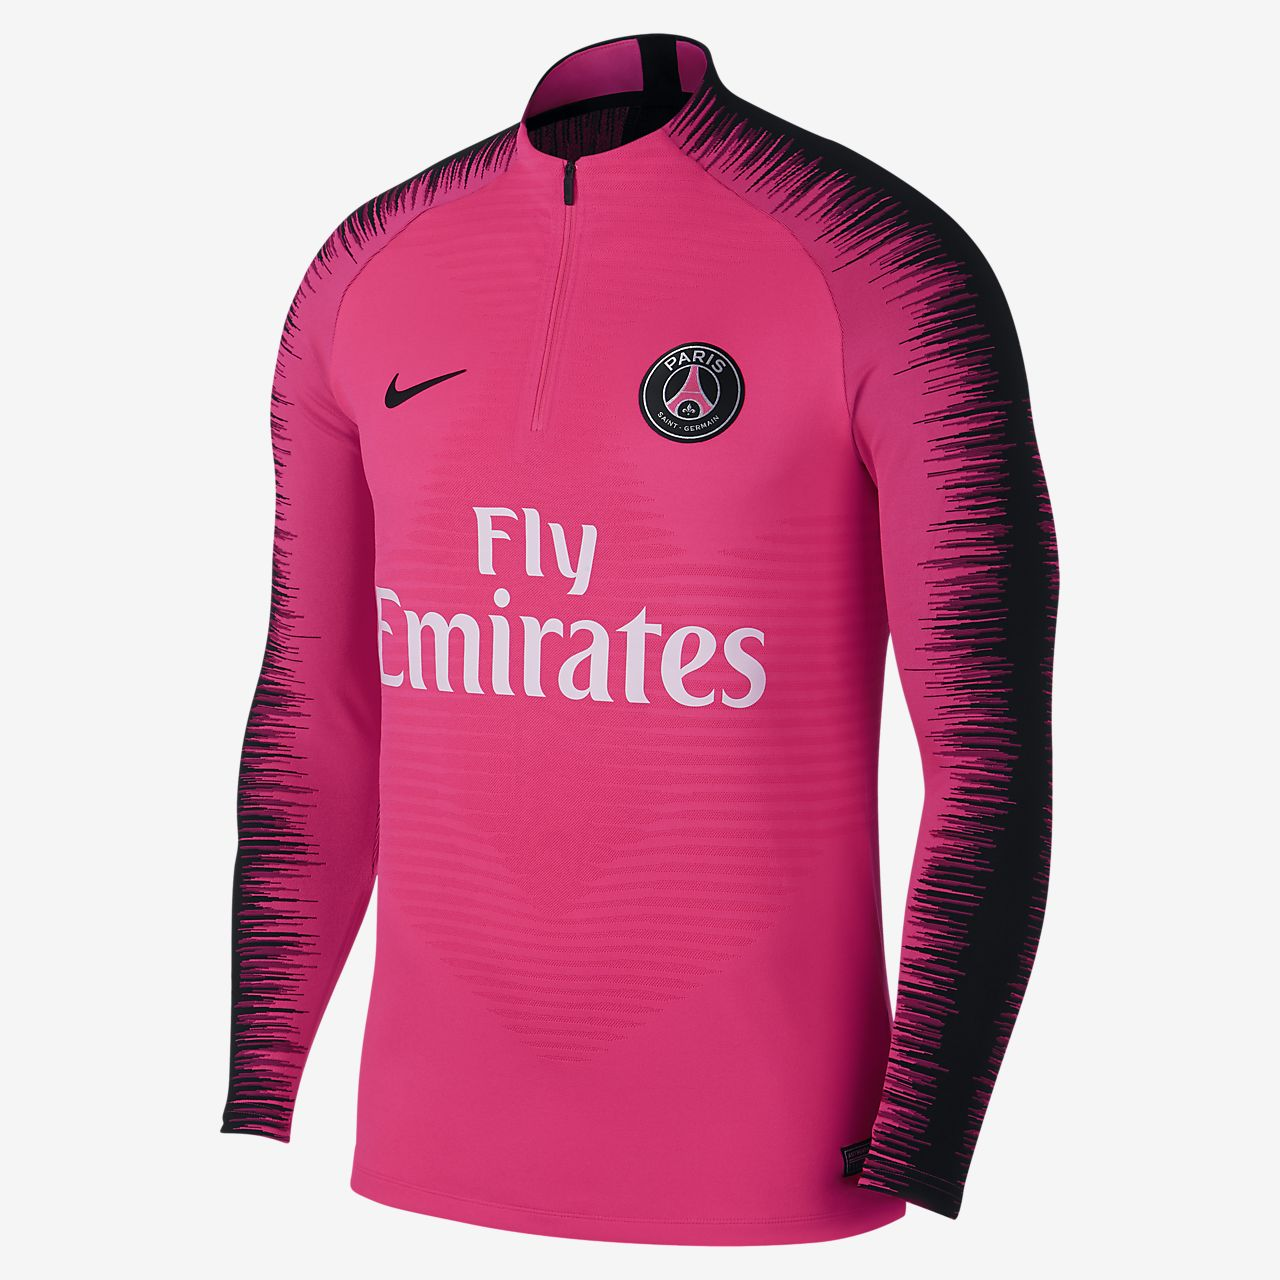 6f8478a2 Paris Saint-Germain VaporKnit Strike Drill Men's Long-Sleeve ...